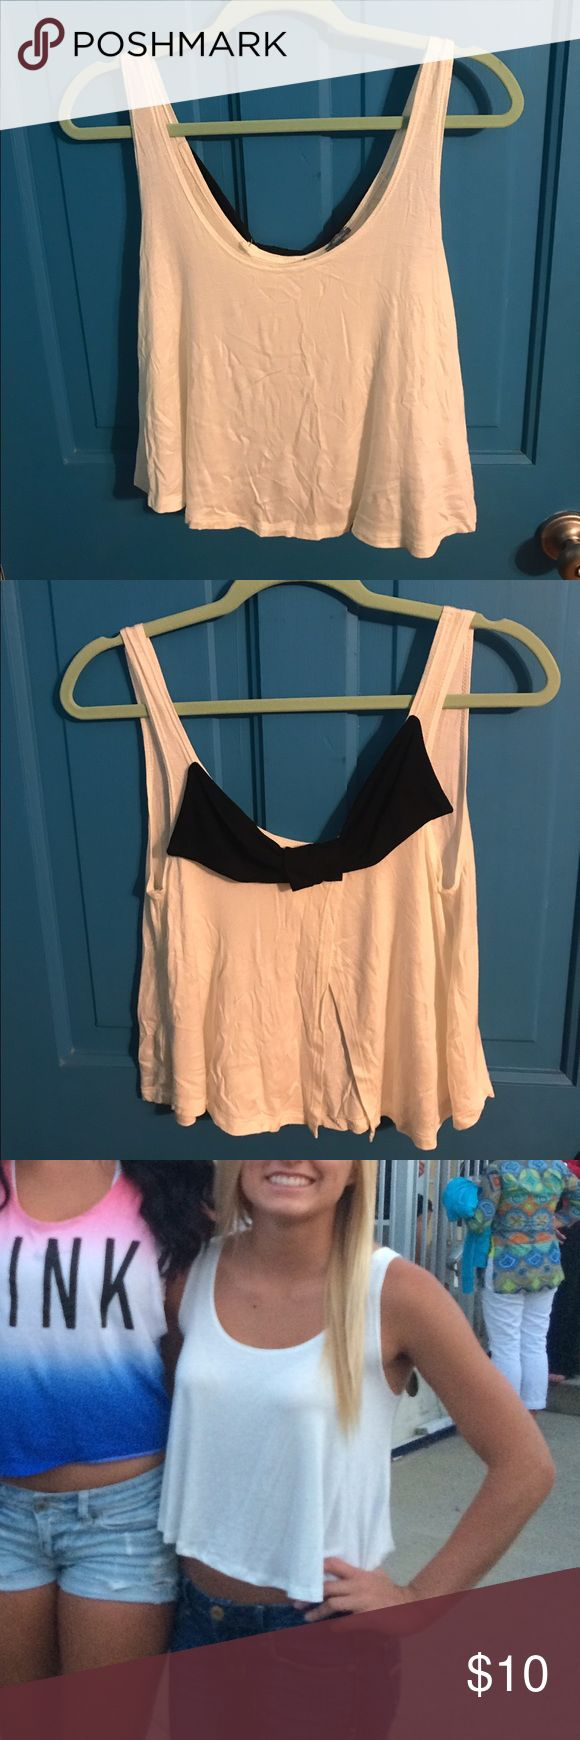 White Bow Back Tank White Bow Back Tank, only worn once no stains great condition Charlotte Russe Tops Tank Tops